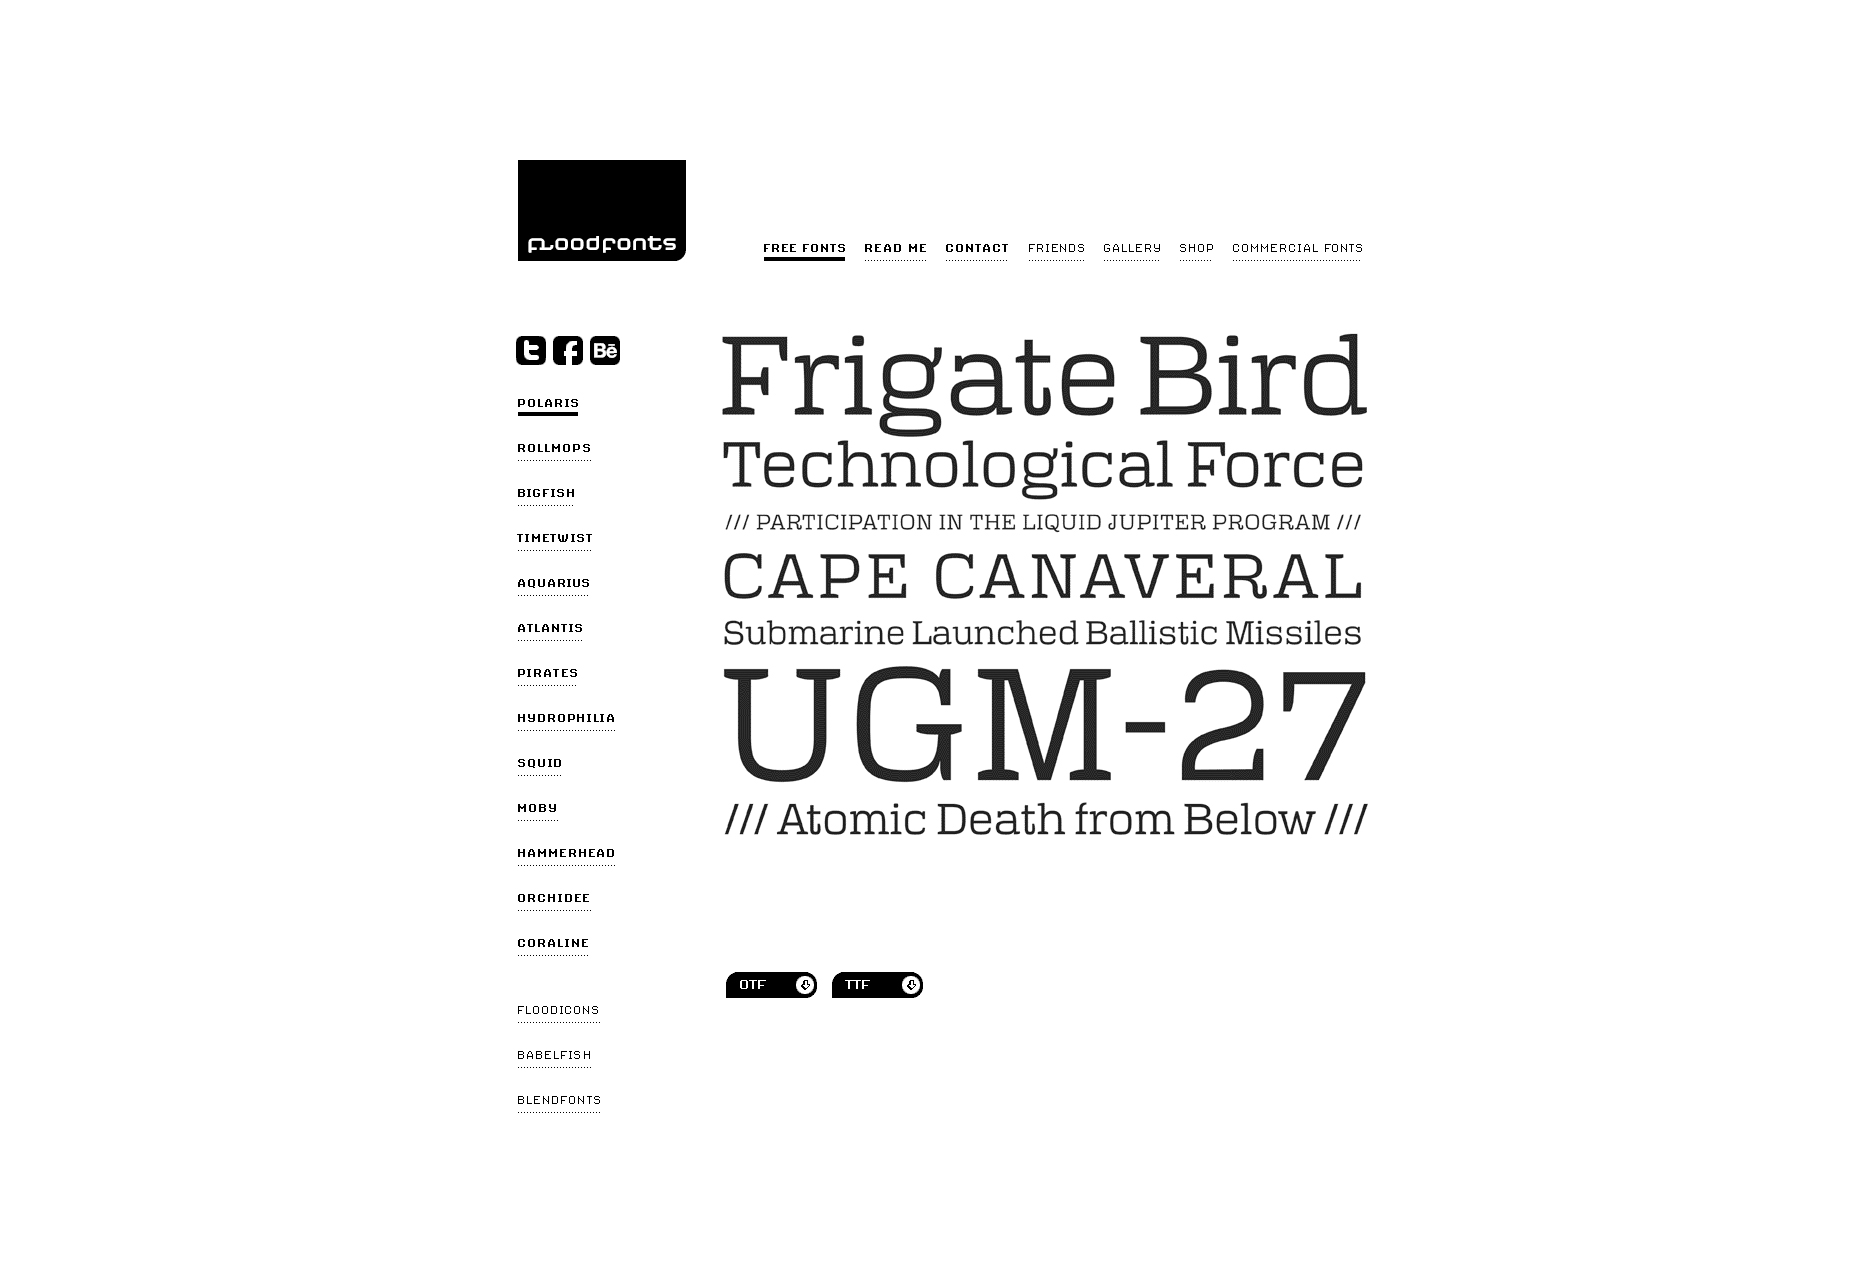 16 Monoline Typefaces in OTF and TTF Formats